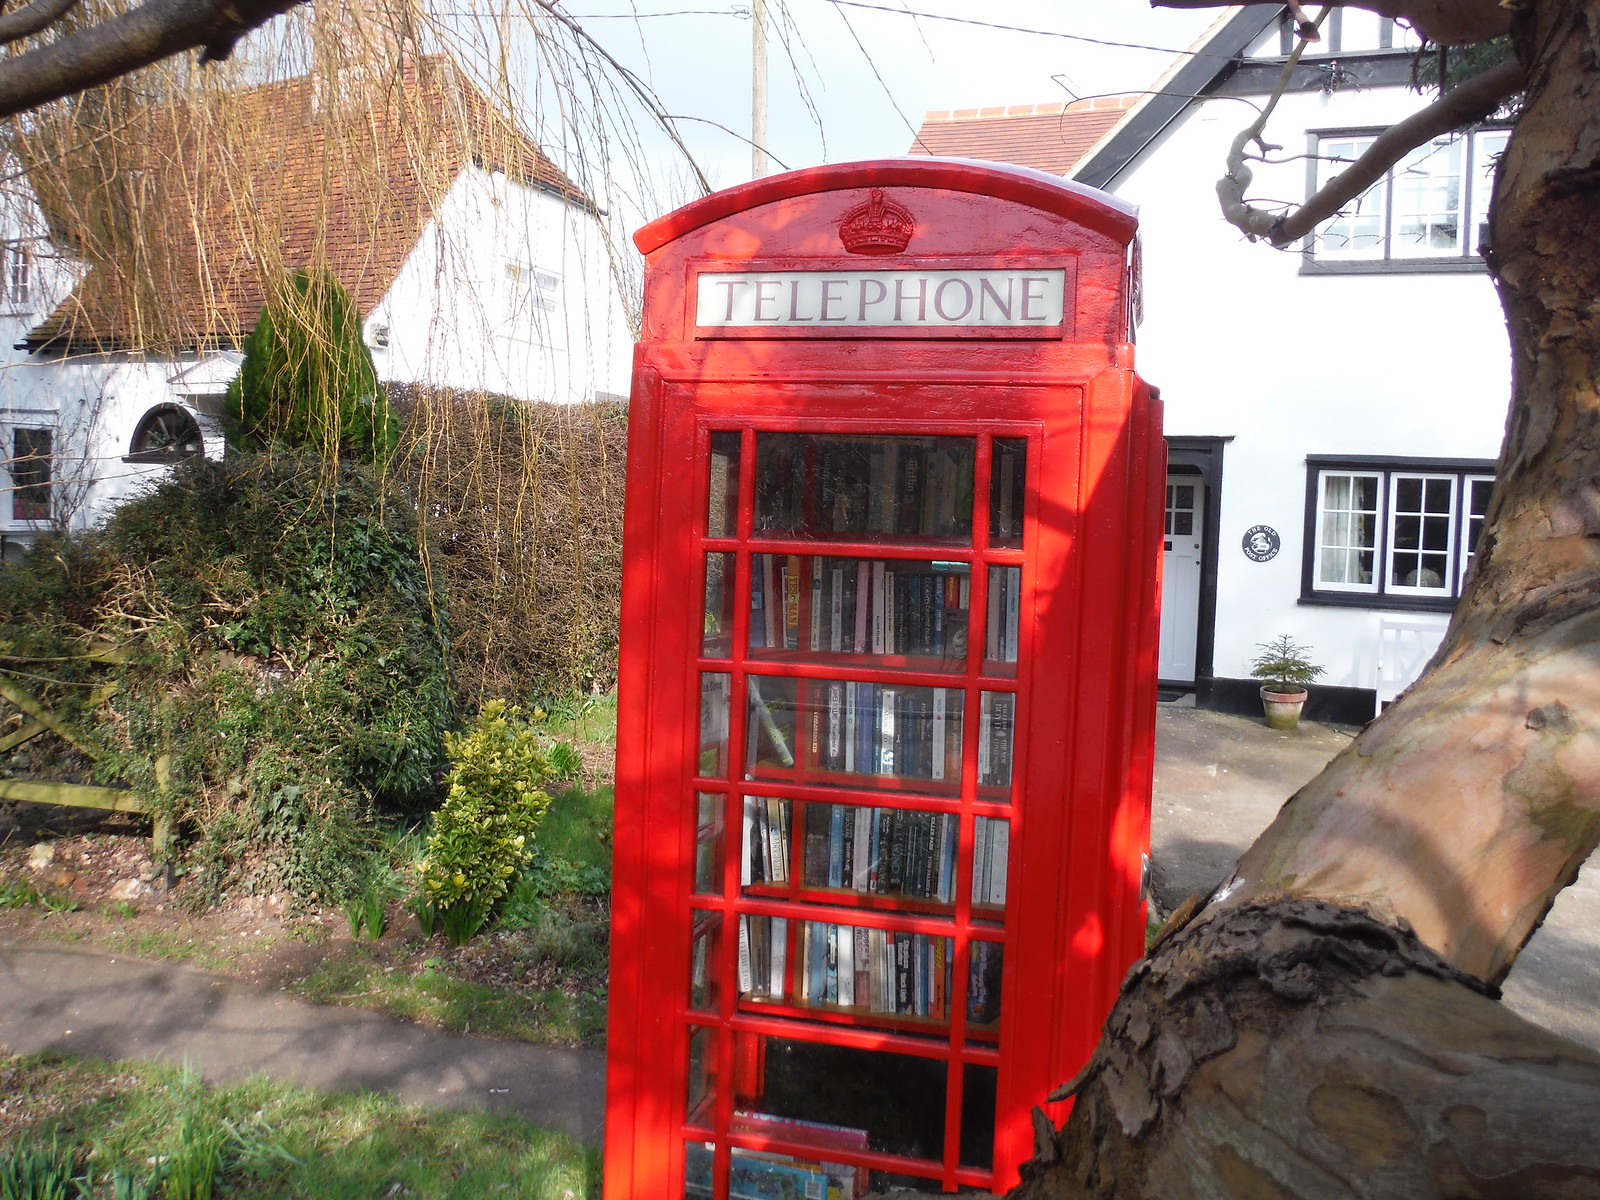 Phone booth serving as village library, Arkesden SWC Walk 116 Wendens Ambo [Audley End station] Circular